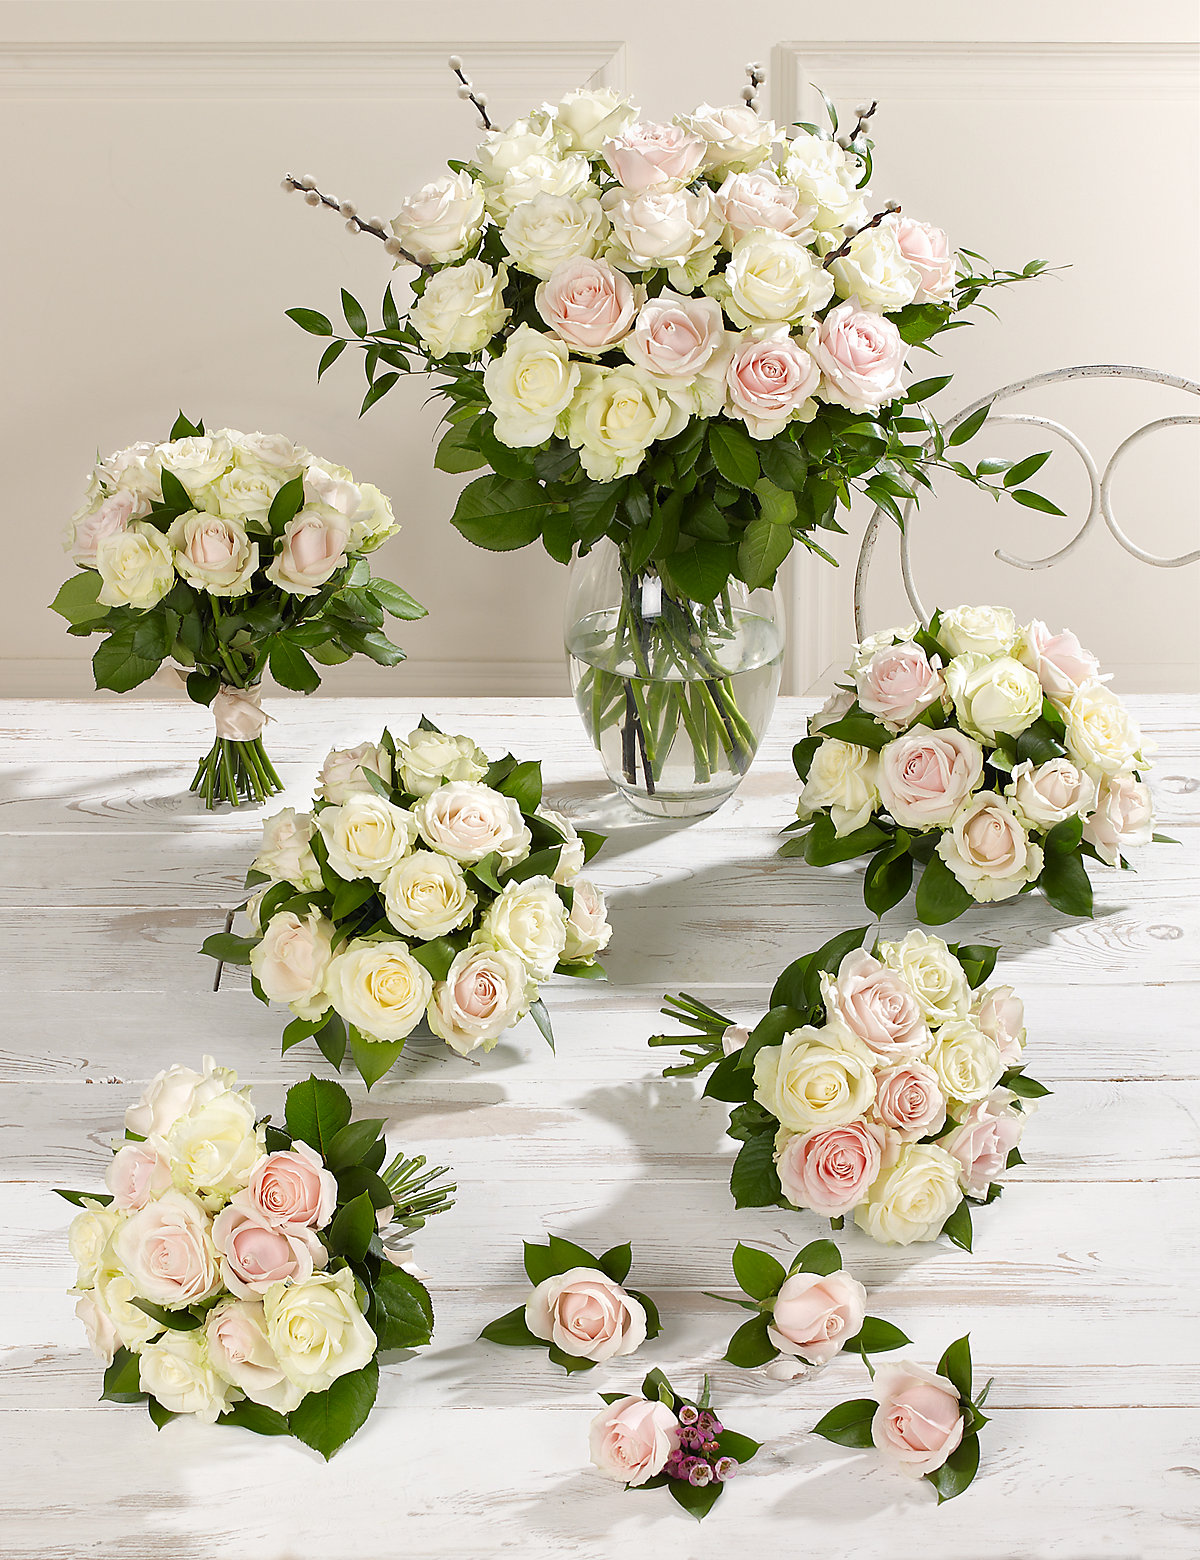 Buy Cheap Flower Wedding Bouquet Compare Flowers Prices For Best UK Deals